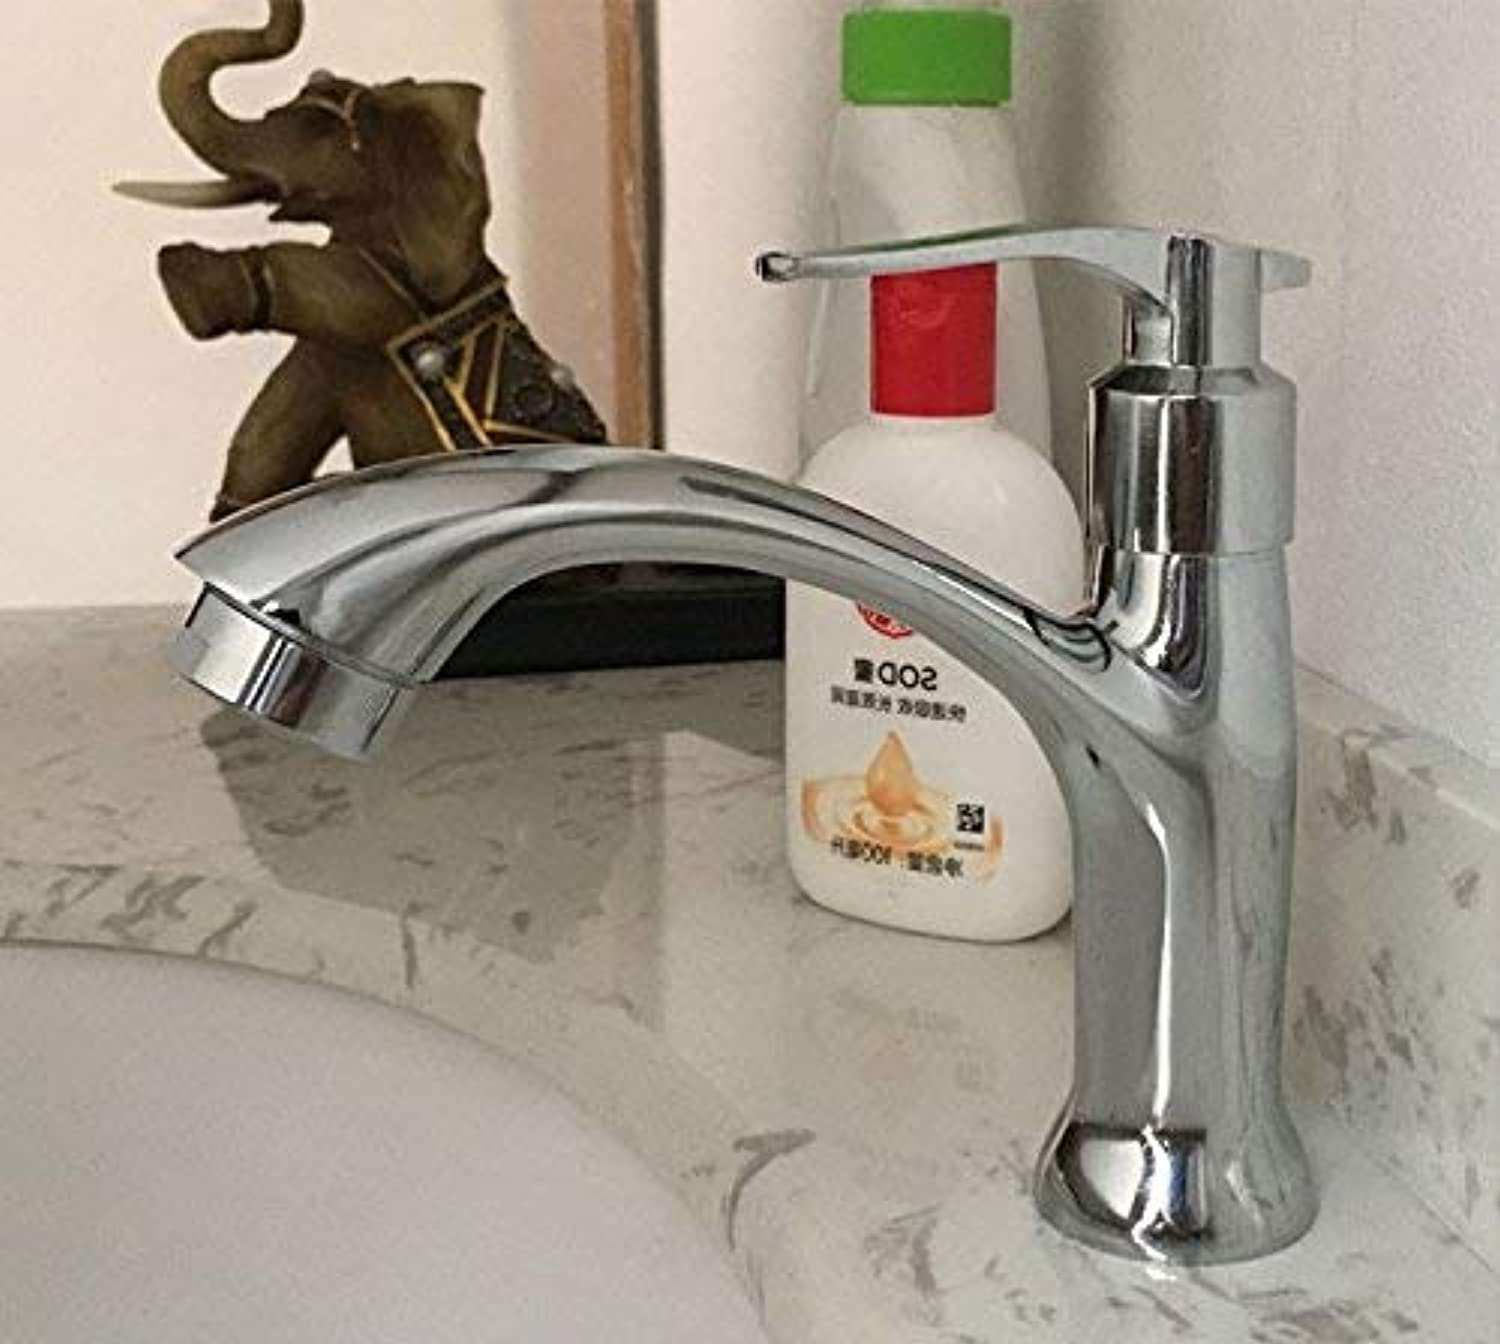 Oudan Basin Mixer Tap Bathroom Sink Faucet Faucet single cold basin mixer basin full copper wash basin sink bathroom vanity sinks faucets, single cold tap + 1 m water inlet pipe (color   1)